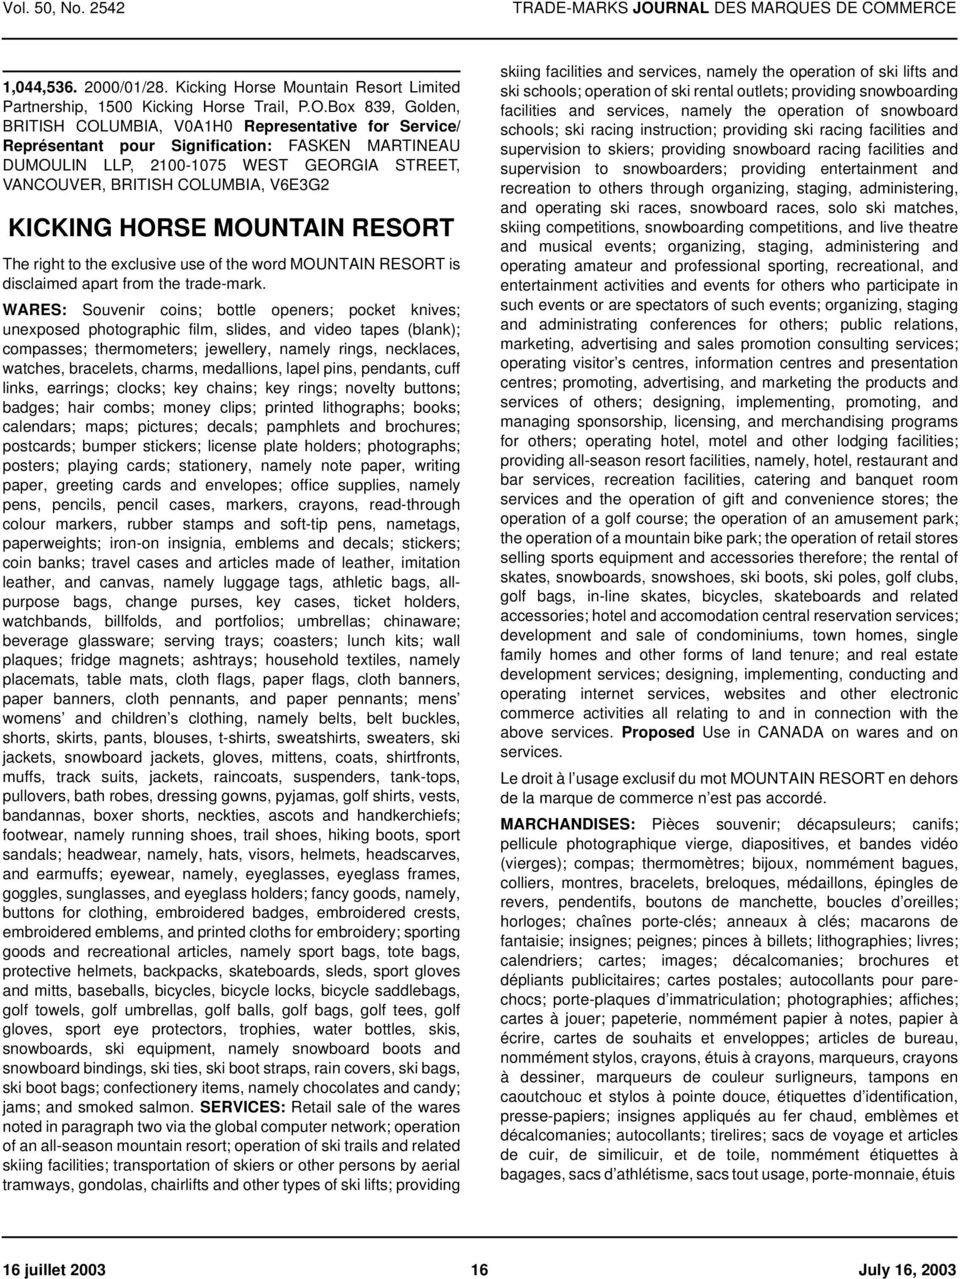 V6E3G2 KICKING HORSE MOUNTAIN RESORT The right to the exclusive use of the word MOUNTAIN RESORT is disclaimed apart from the trade-mark.